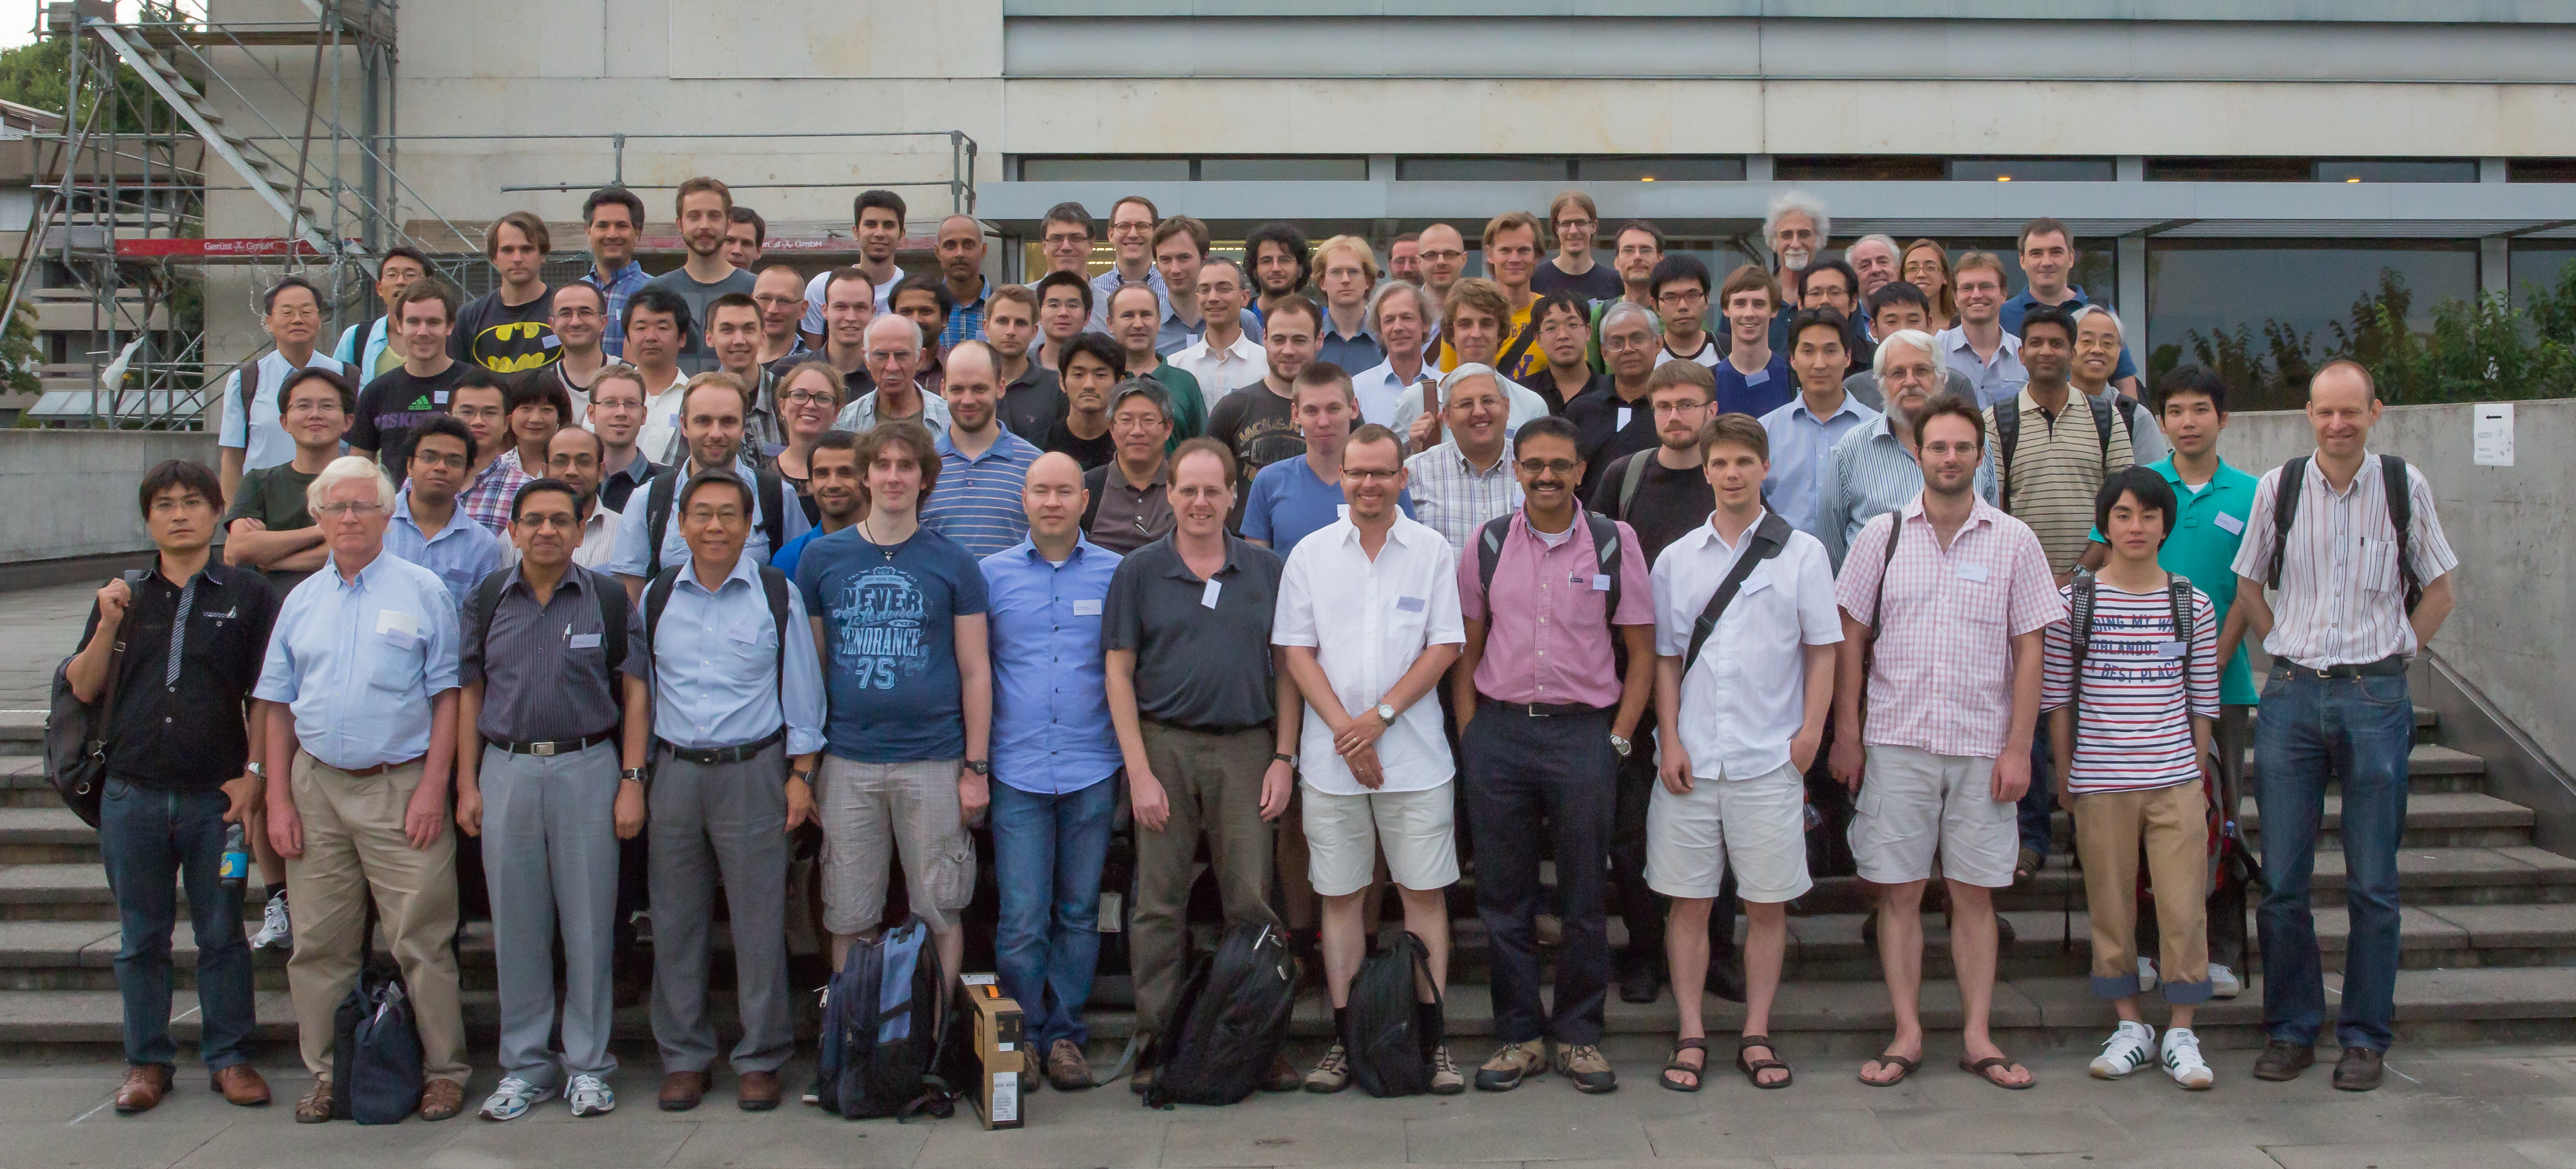 XQCD13 workshop photo